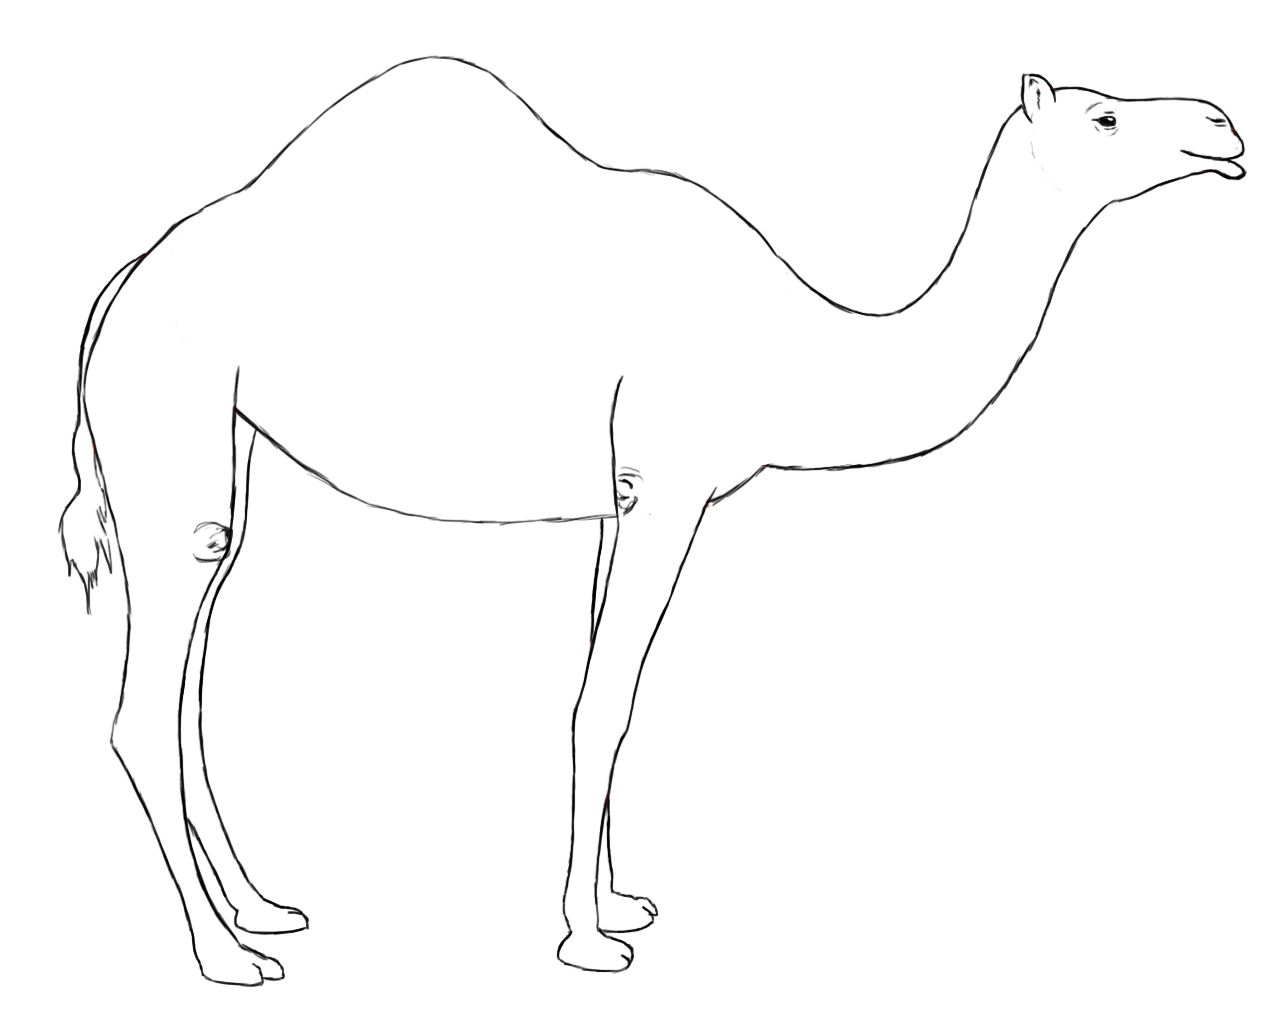 Uncategorized How To Draw A Camel Step By Step how to draw a camel camels tutorials and drawings camel